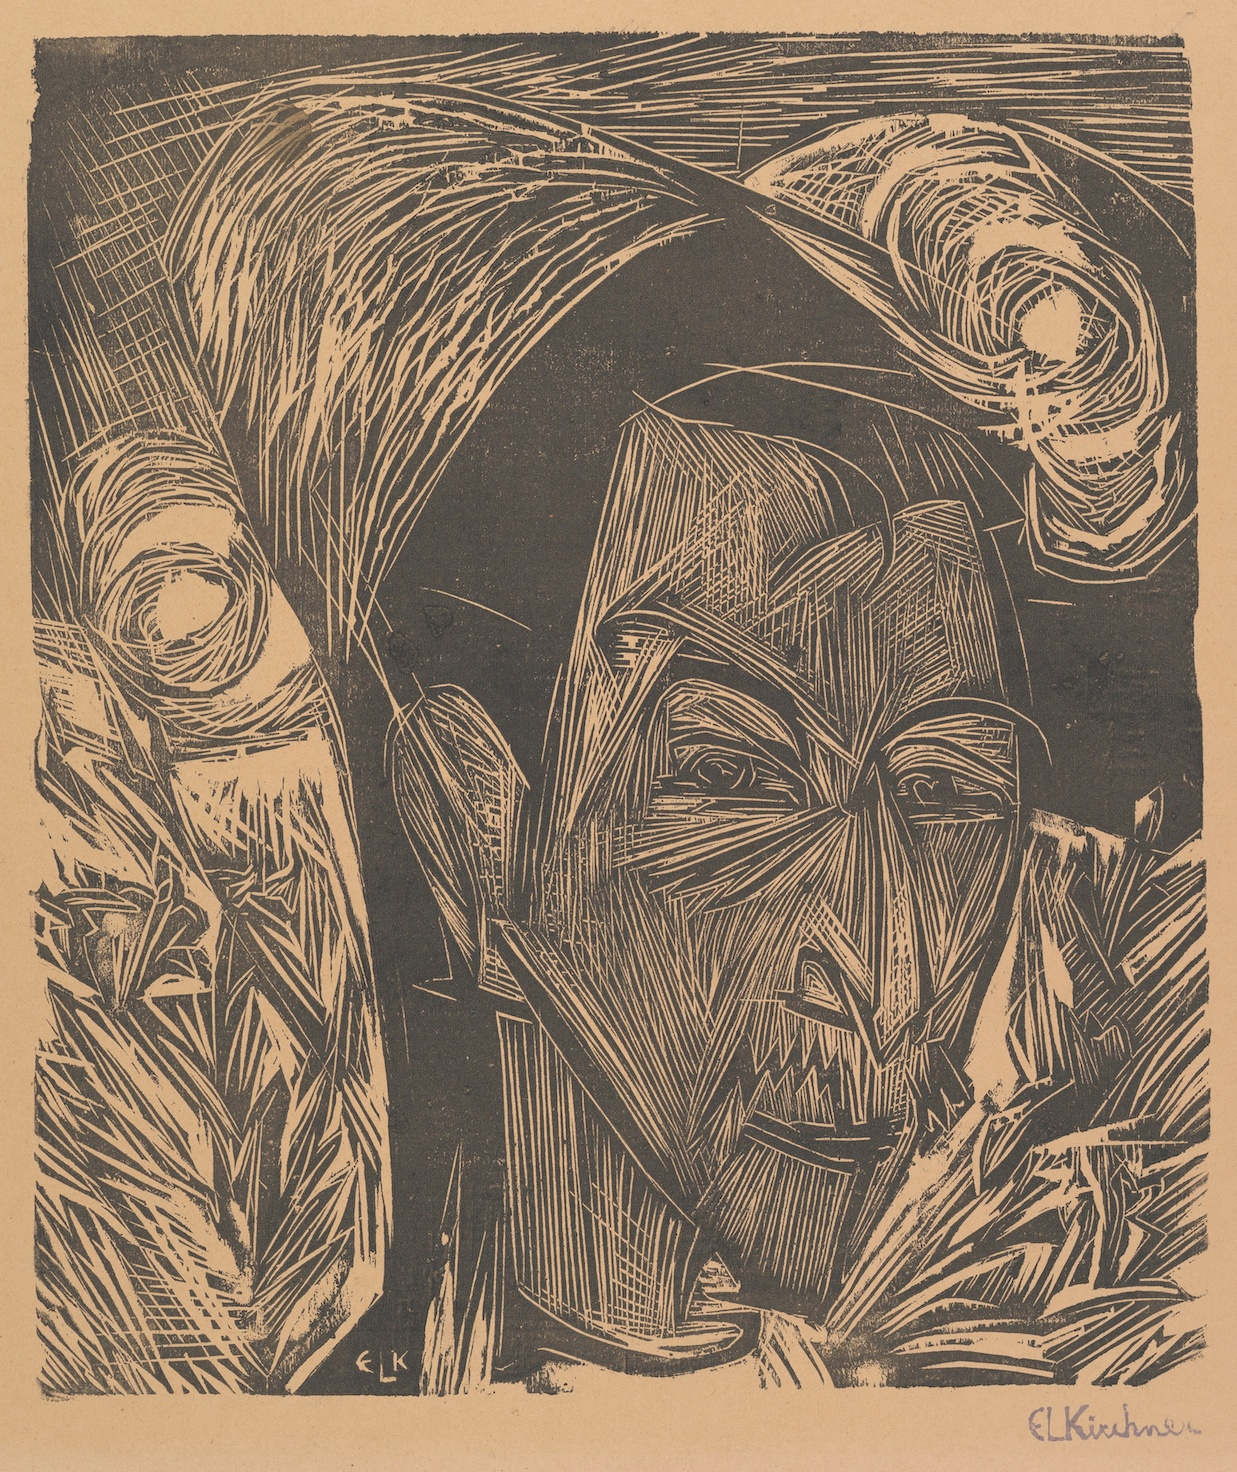 """Ernst Ludwig Kirchner - Ernst Ludwig Kirchner, was born in 1880 in Aschaffenberg, Bavaria.German painter and printmaker who was one of the leaders of a group of Expressionist artists known as Die Brücke (""""The Bridge""""). His mature style was highly personal and notable for its psychological tension and eroticism.In 1911 the members of Die Brücke moved to Berlin, where Kirchner produced masterful woodcuts for Der Sturm, Germany's leading avant-garde periodical before World War I. After a mental and physical breakdown in 1915, Kirchner moved to Switzerland. His late landscapes are often allegorical, showing human beings unencumbered by civilization and at peace with nature. Kirchner endured long periods of depression, and after the Nazis declared his work """"degenerate"""" in 1937, he committed suicide."""